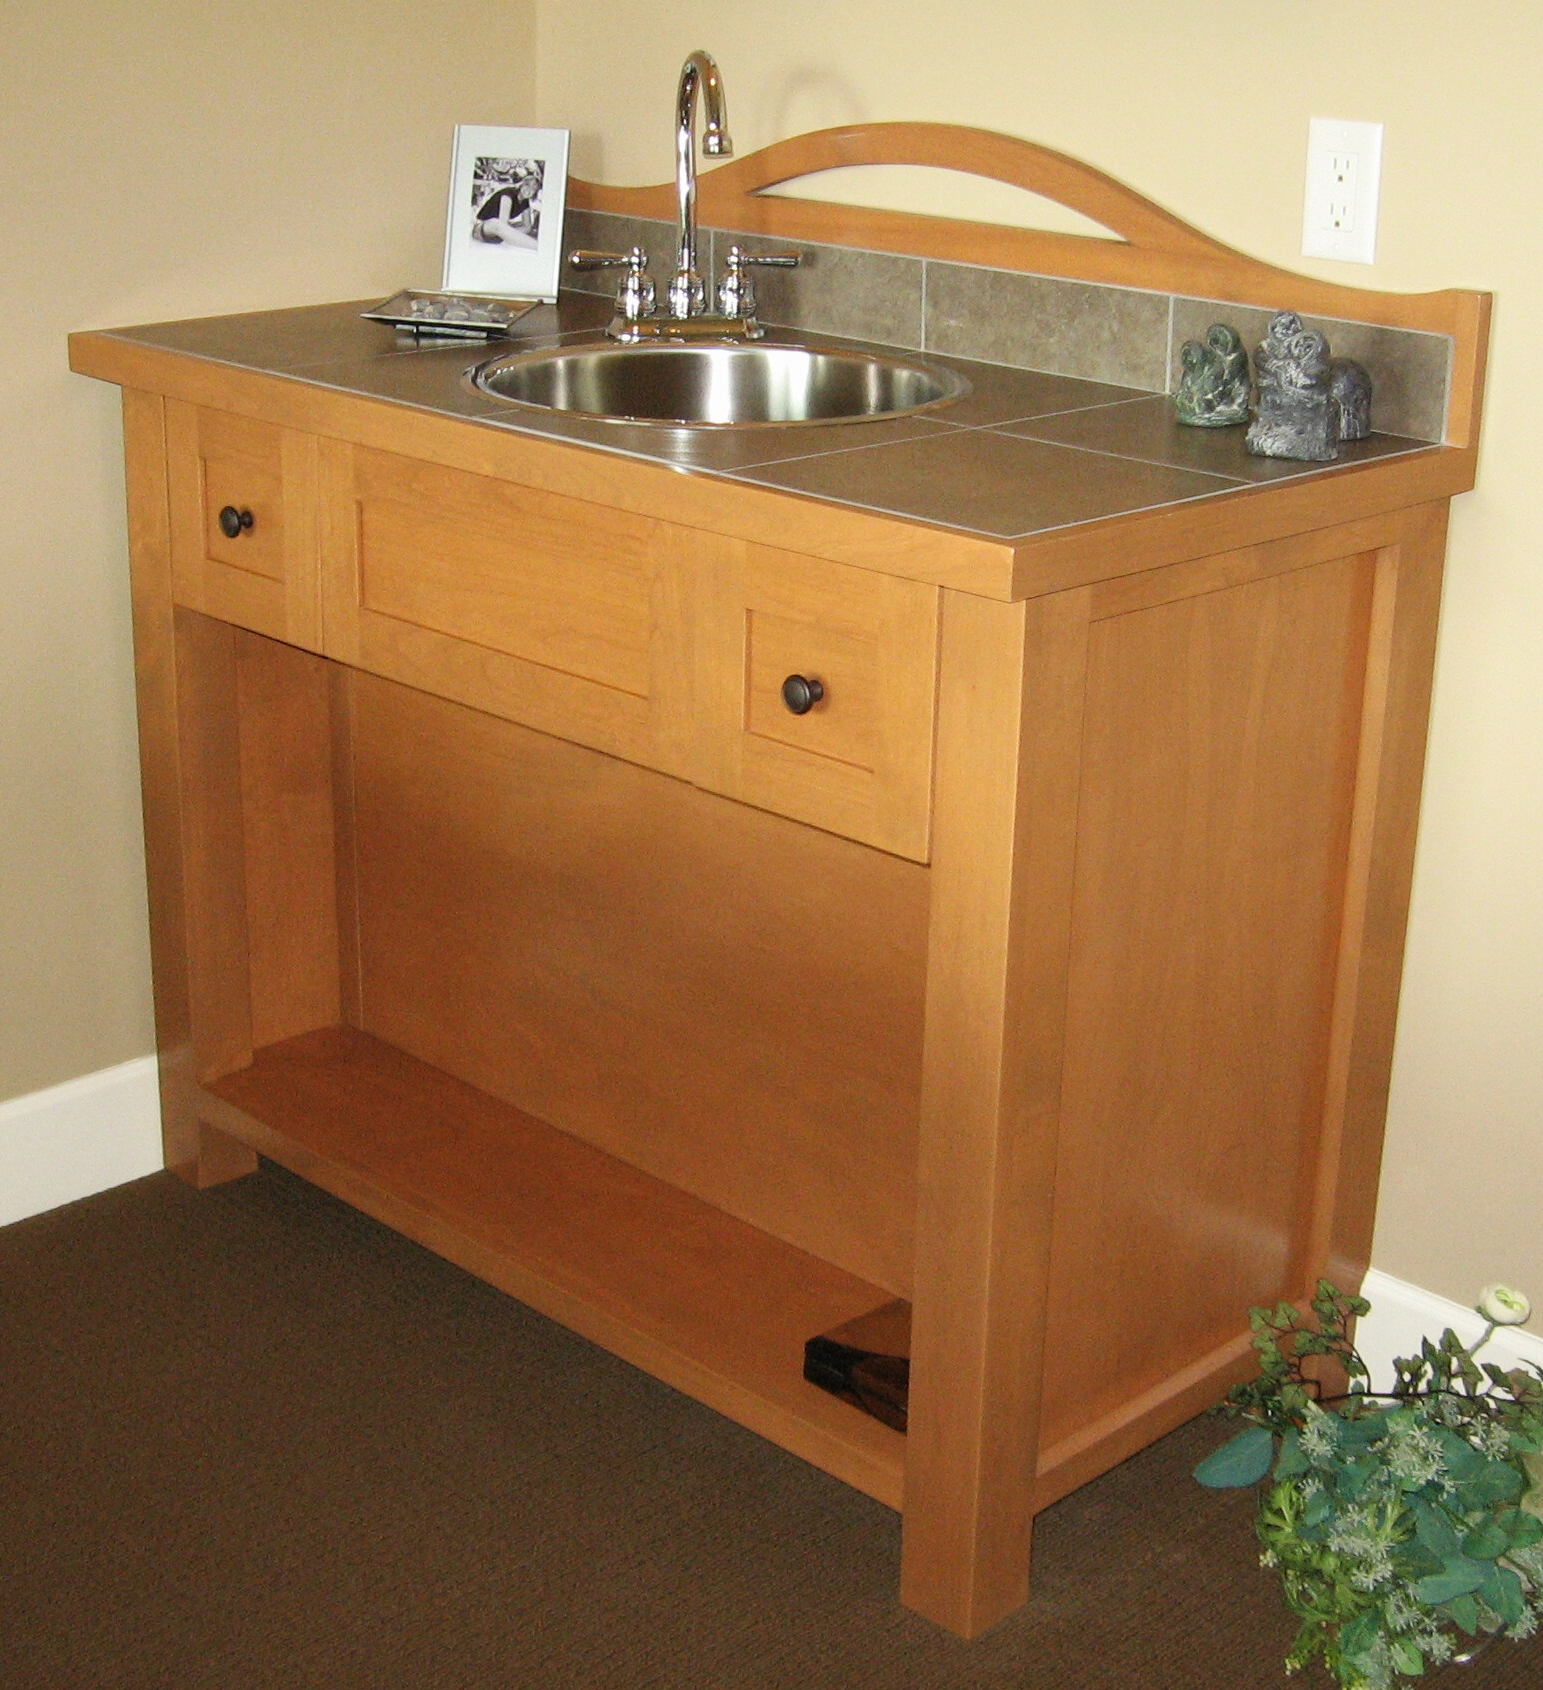 arts-and-crafts-style-bar-sink-cabinet.JPG